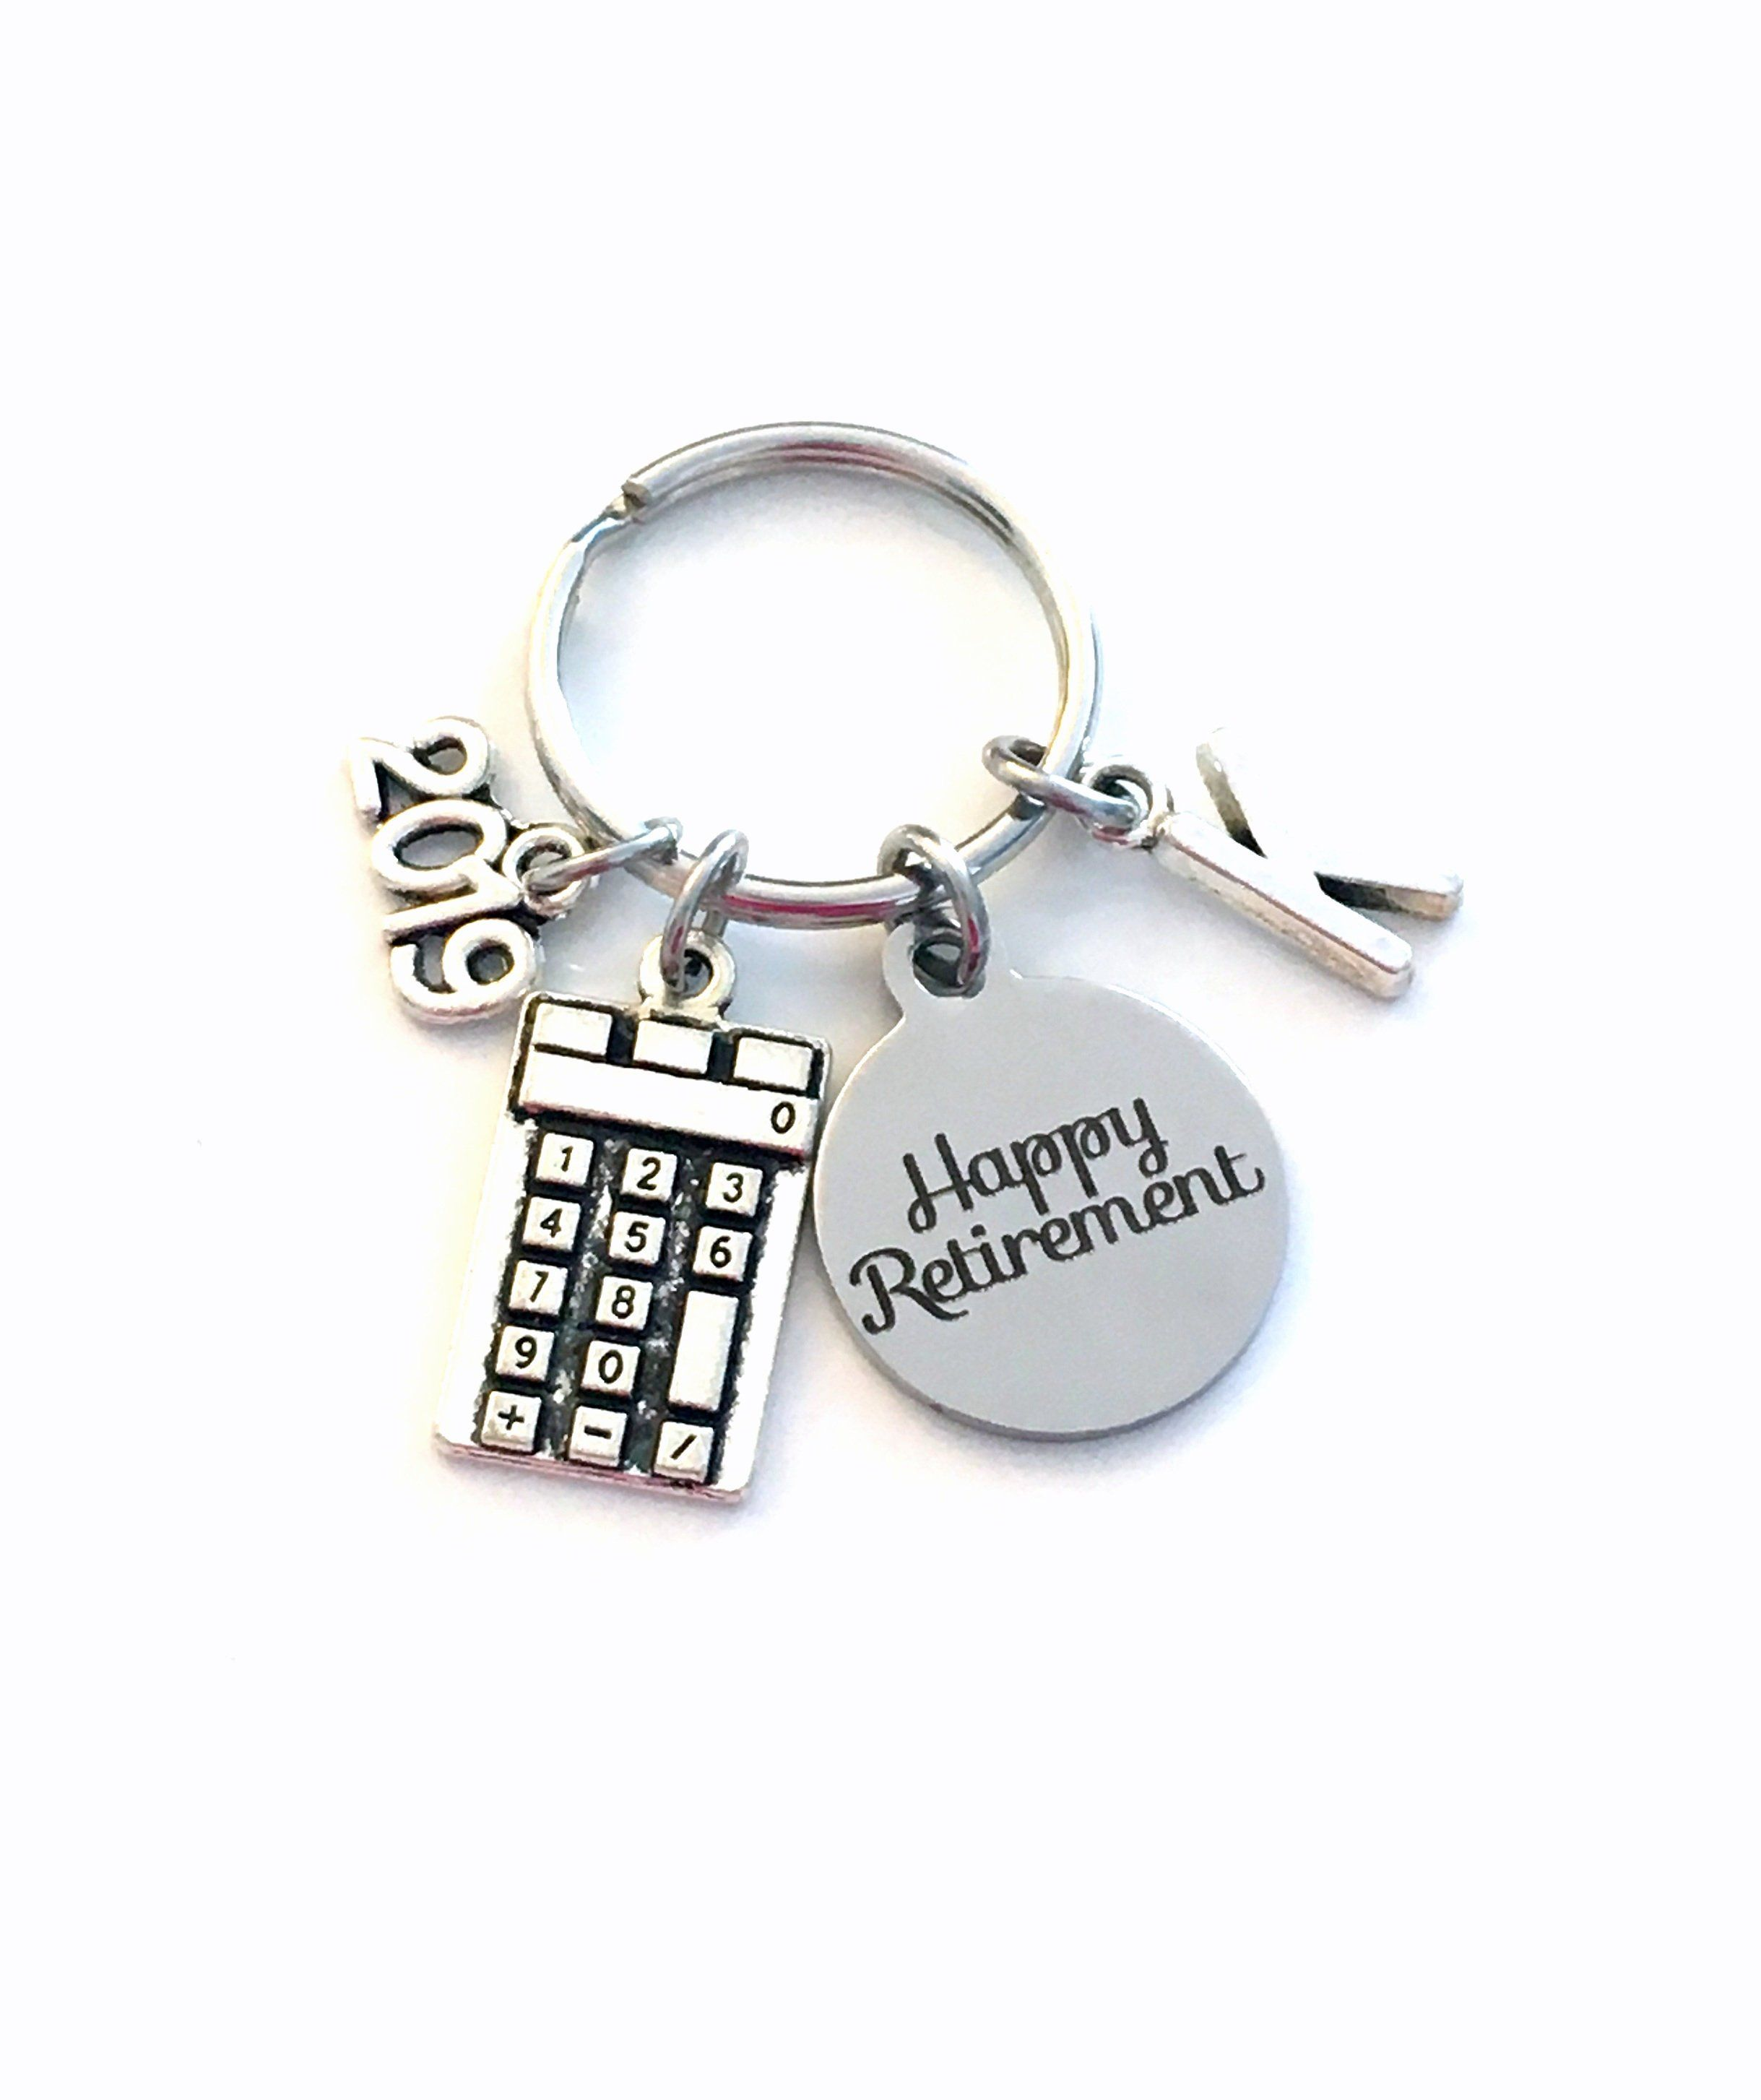 Retirement Gift for Business Man or Woman Keychain f281829dca